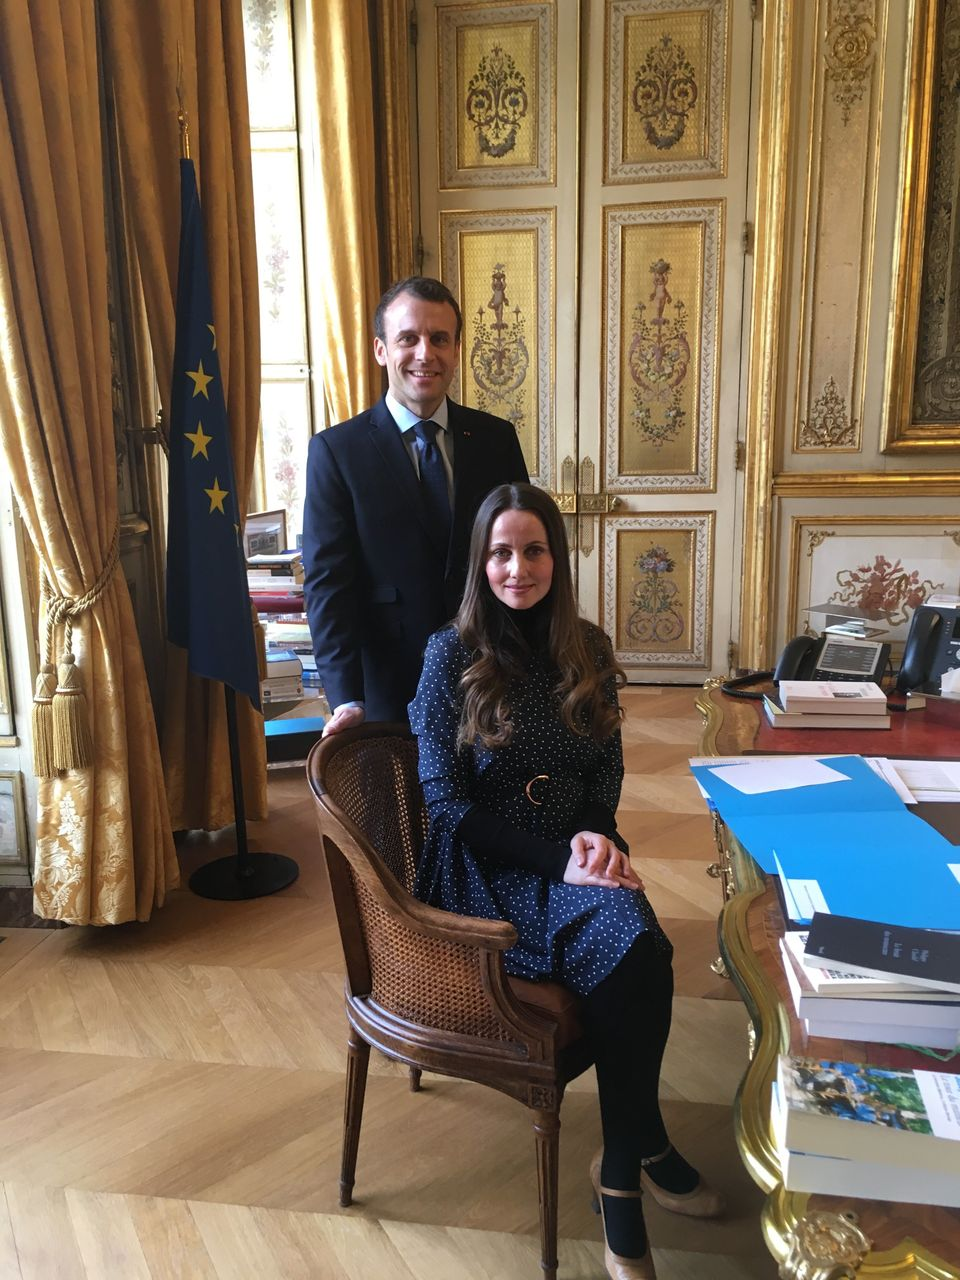 Sherin with France's president Emmanuel